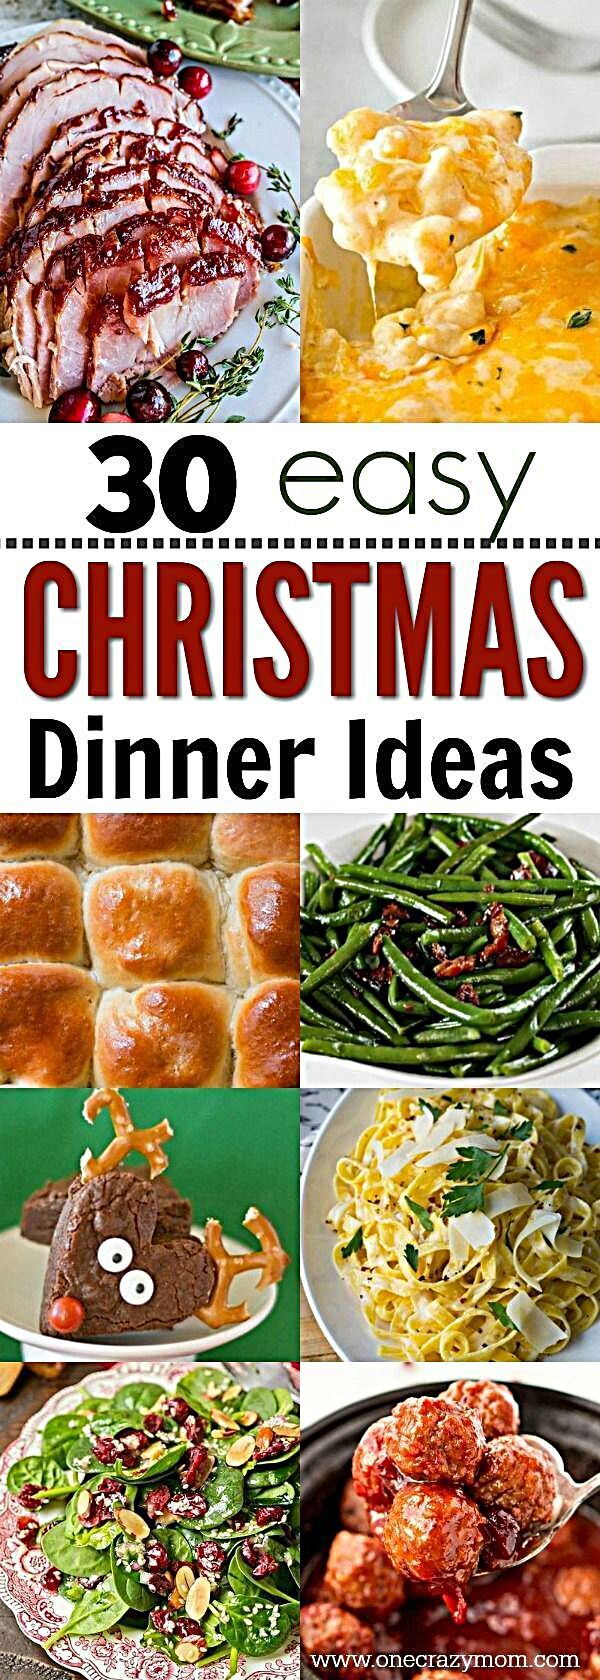 Get ready for your holiday meal with these easy Christmas dinner ideas. 30 Christmas dinner ideas su...